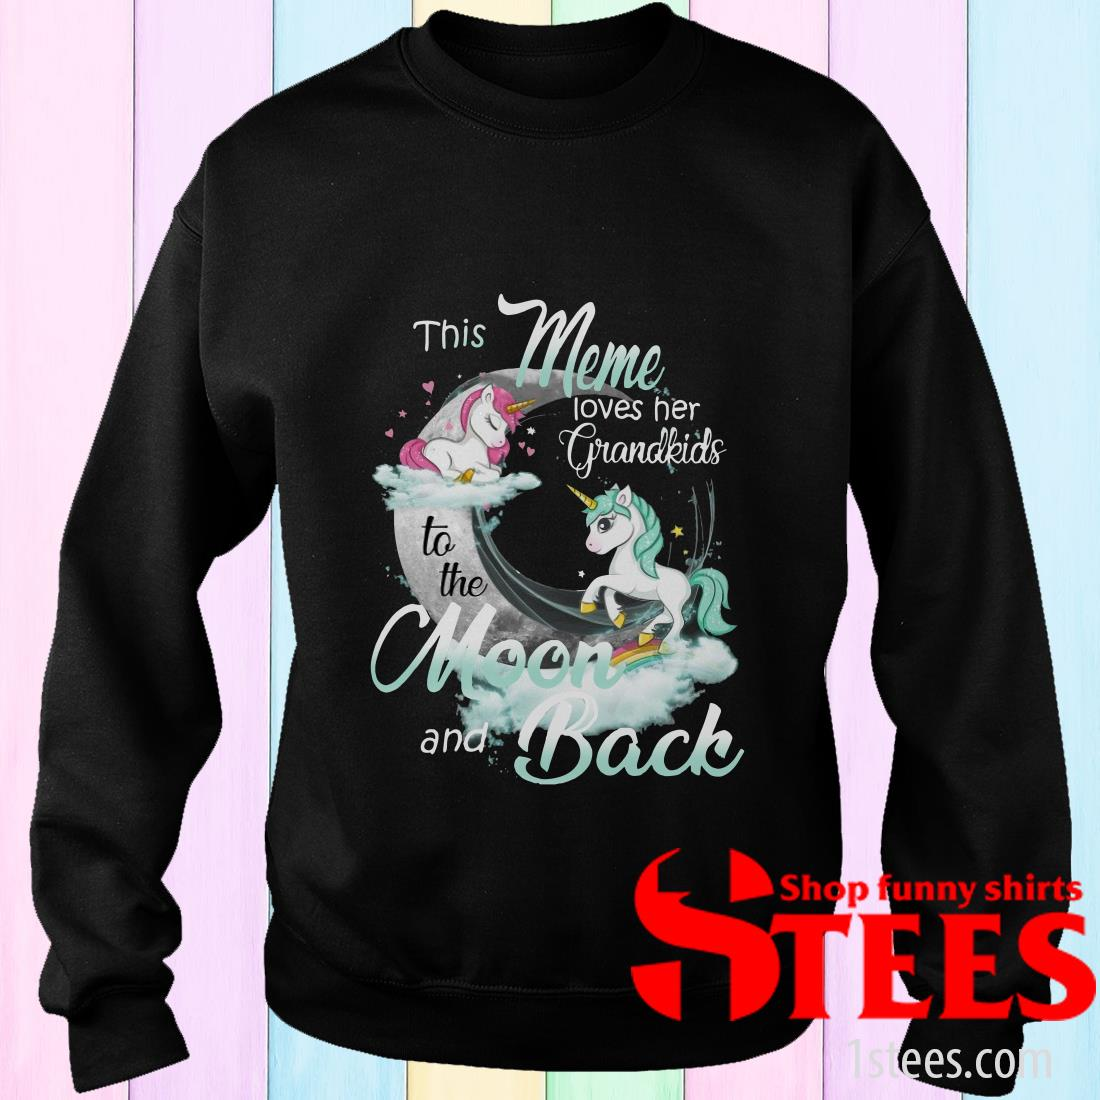 This Meme Loves Her Grandkids To The Moon And Back Unicorn Sweater